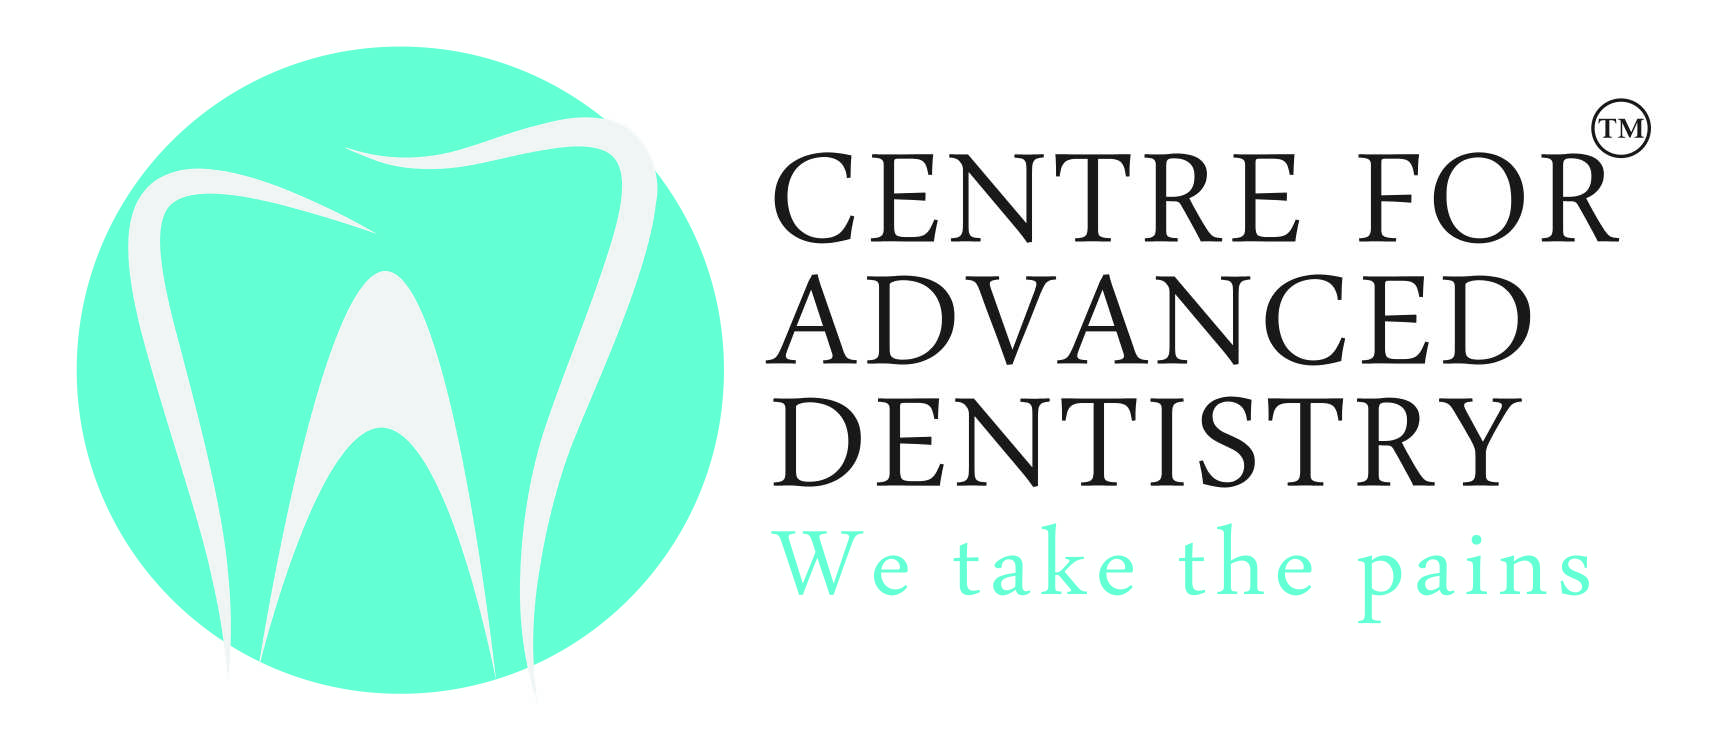 Centre For Advanced Dentistry